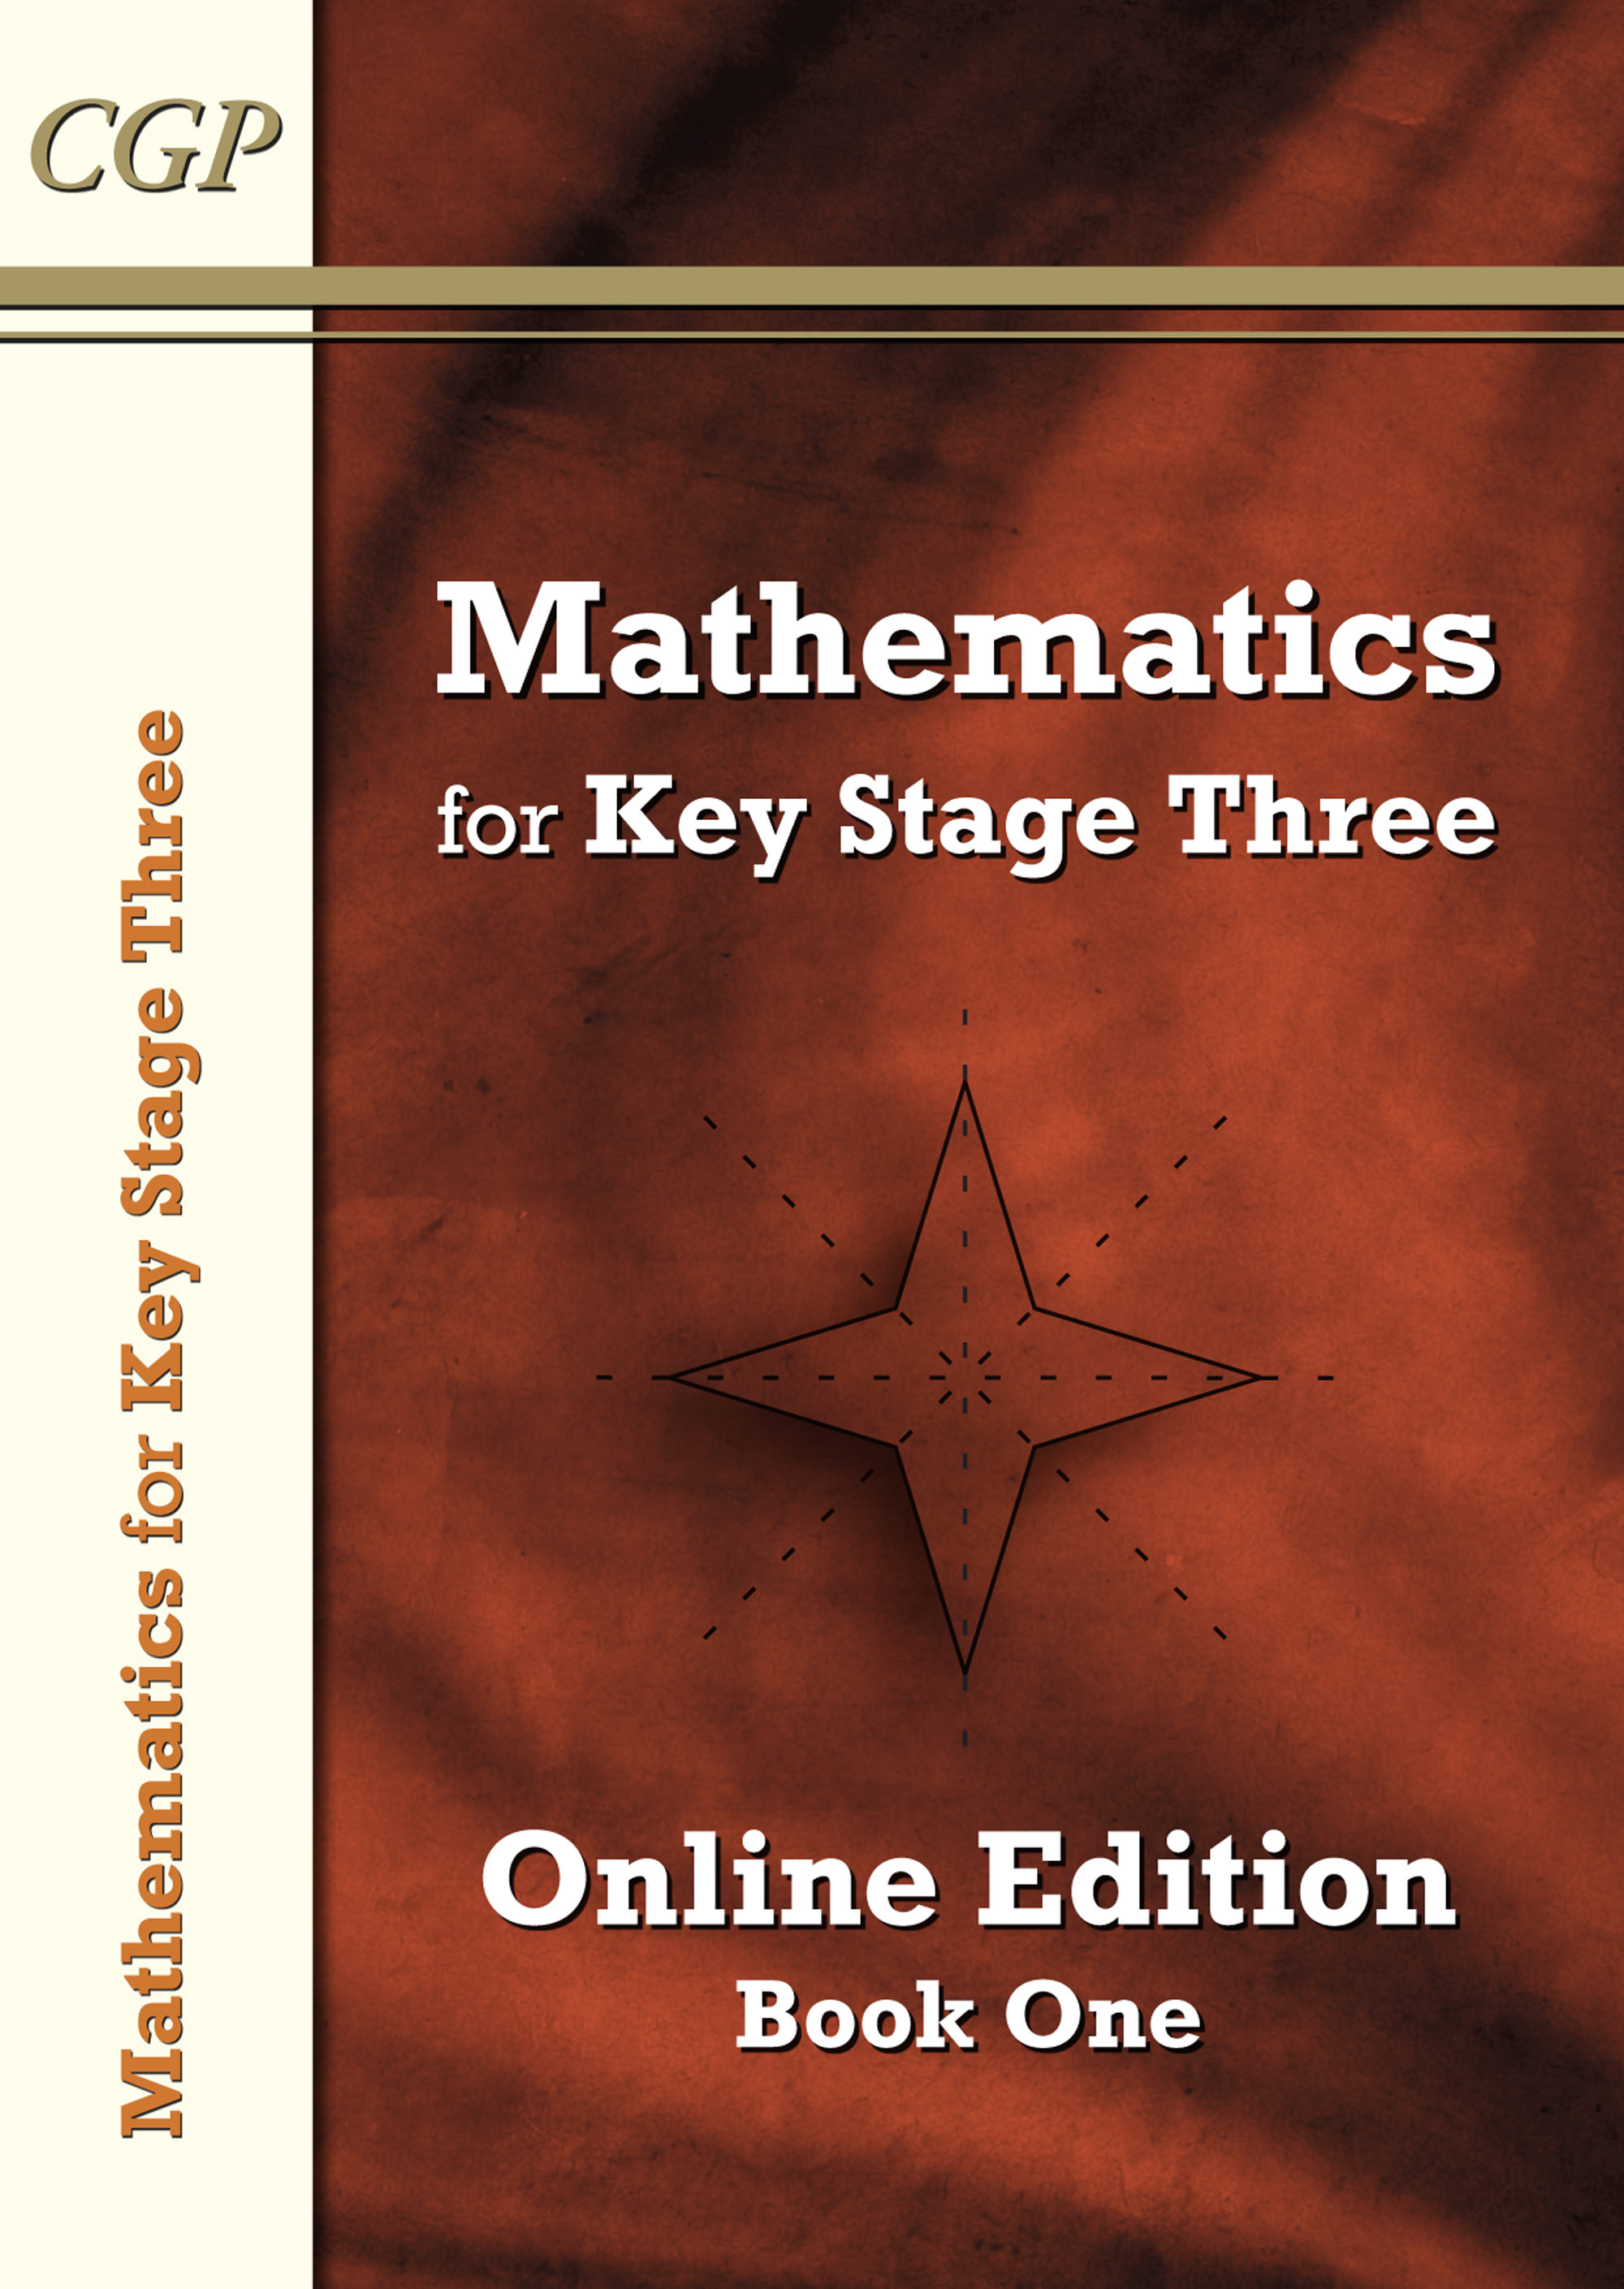 M1NN31D - KS3 Maths Textbook 1: Student Online Edition (without answers)